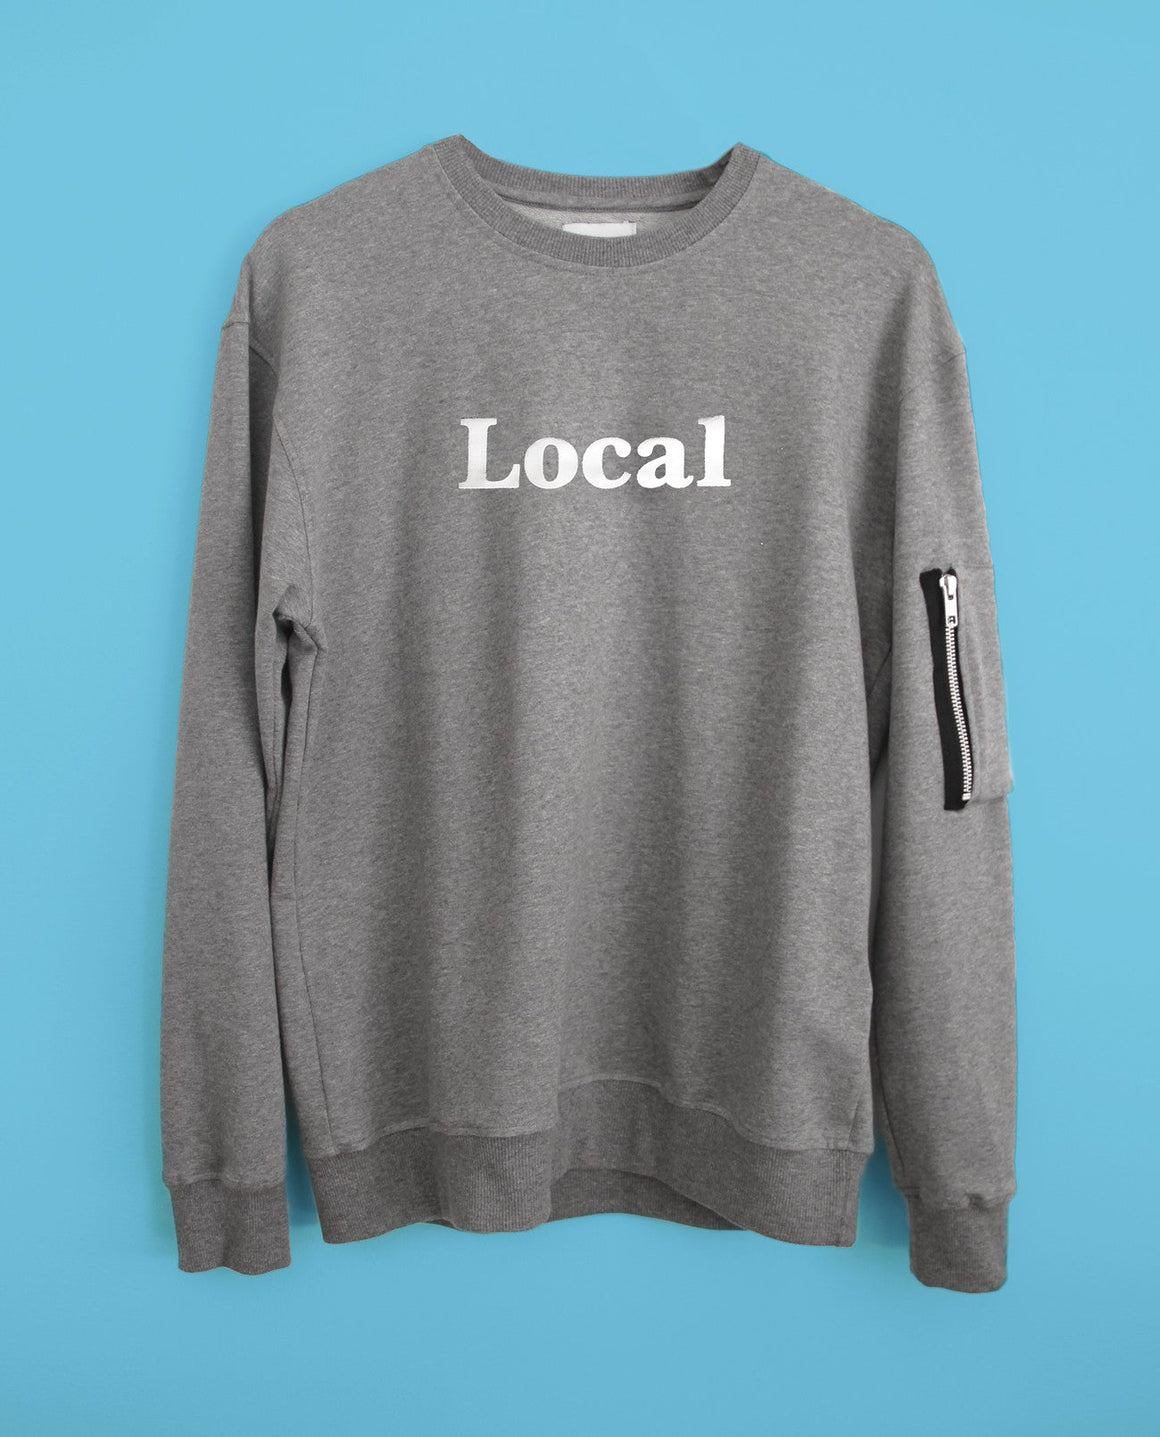 Local Sweatshirt with zipper pocket - Local Pattern